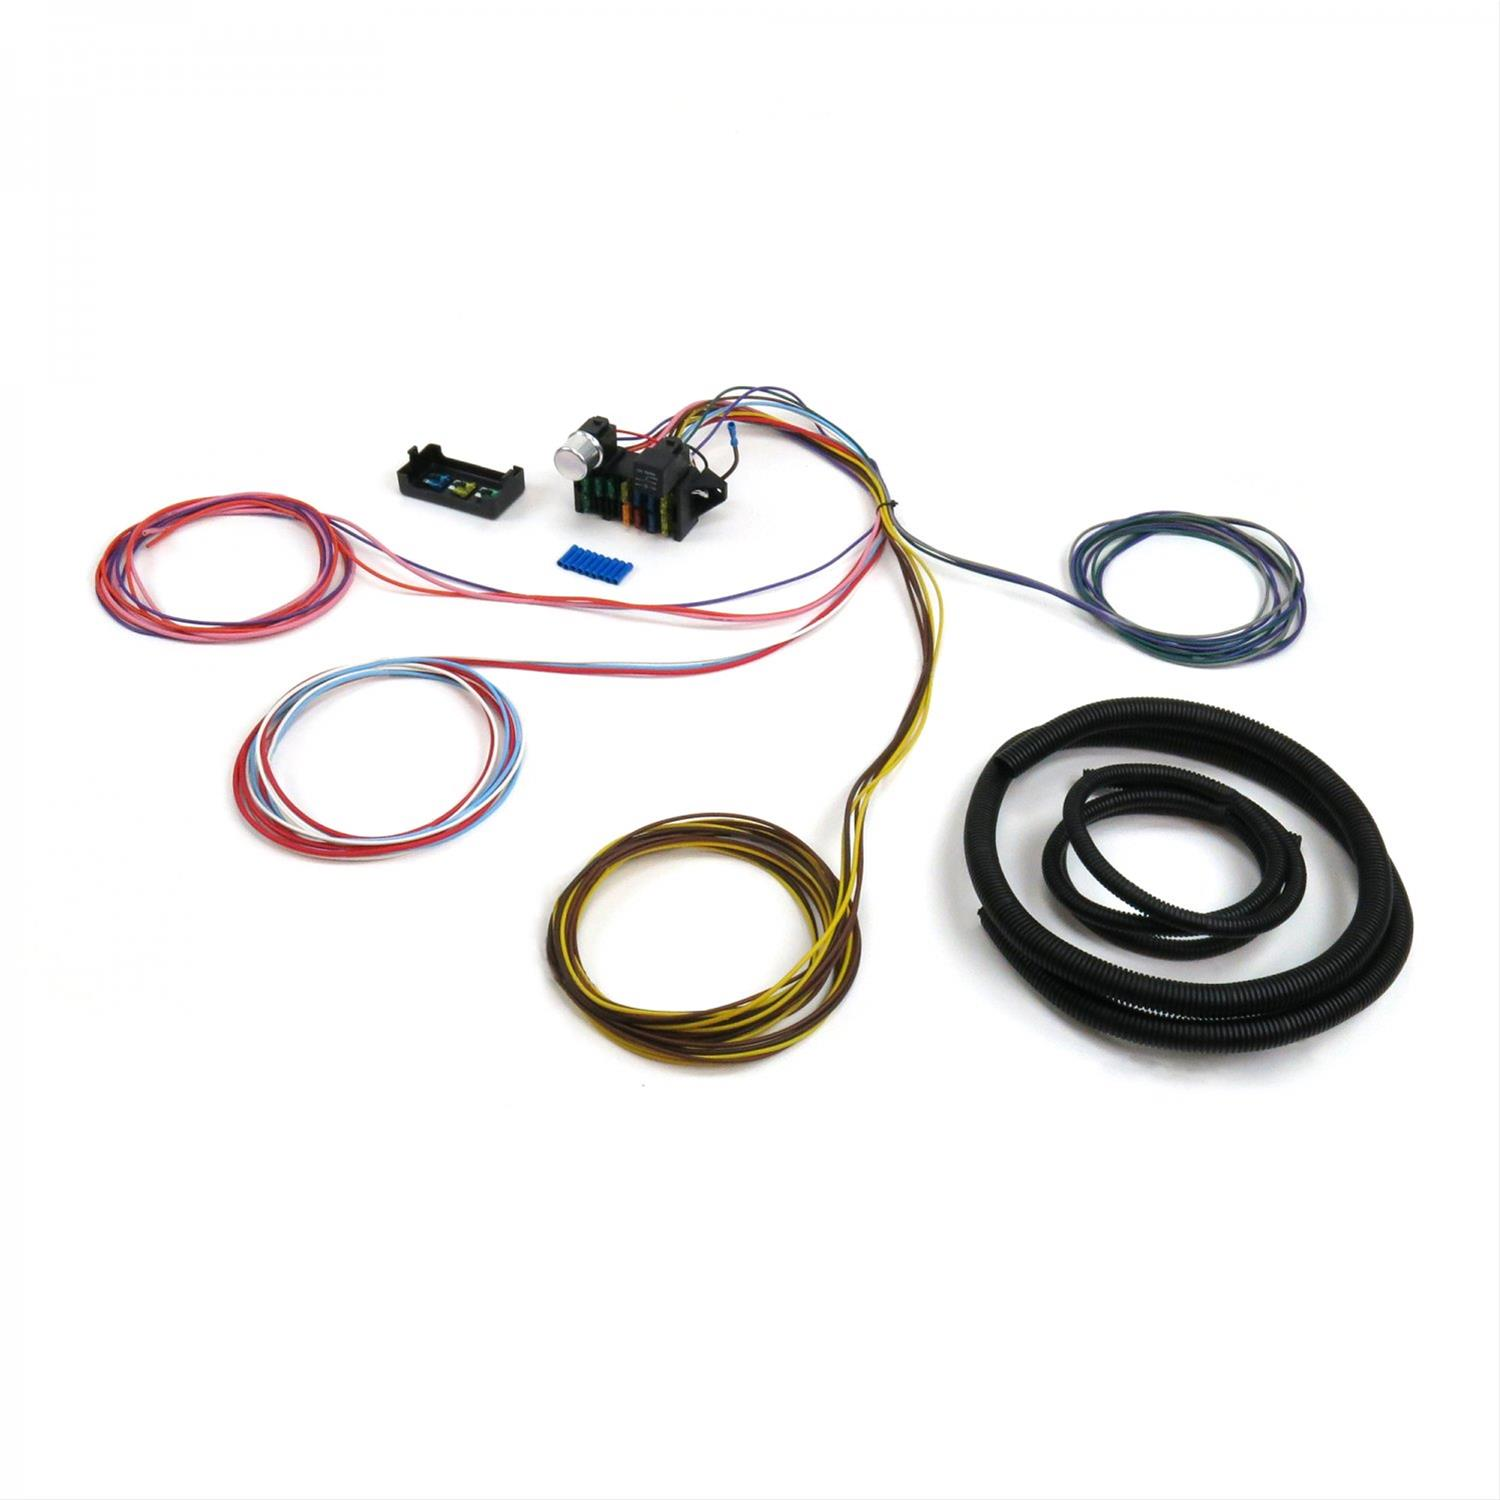 Keep It Clean Procomp Wiring Harnesses Kicprocomp12b Free Shipping 1957 Cadillac Harness On Orders Over 99 At Summit Racing